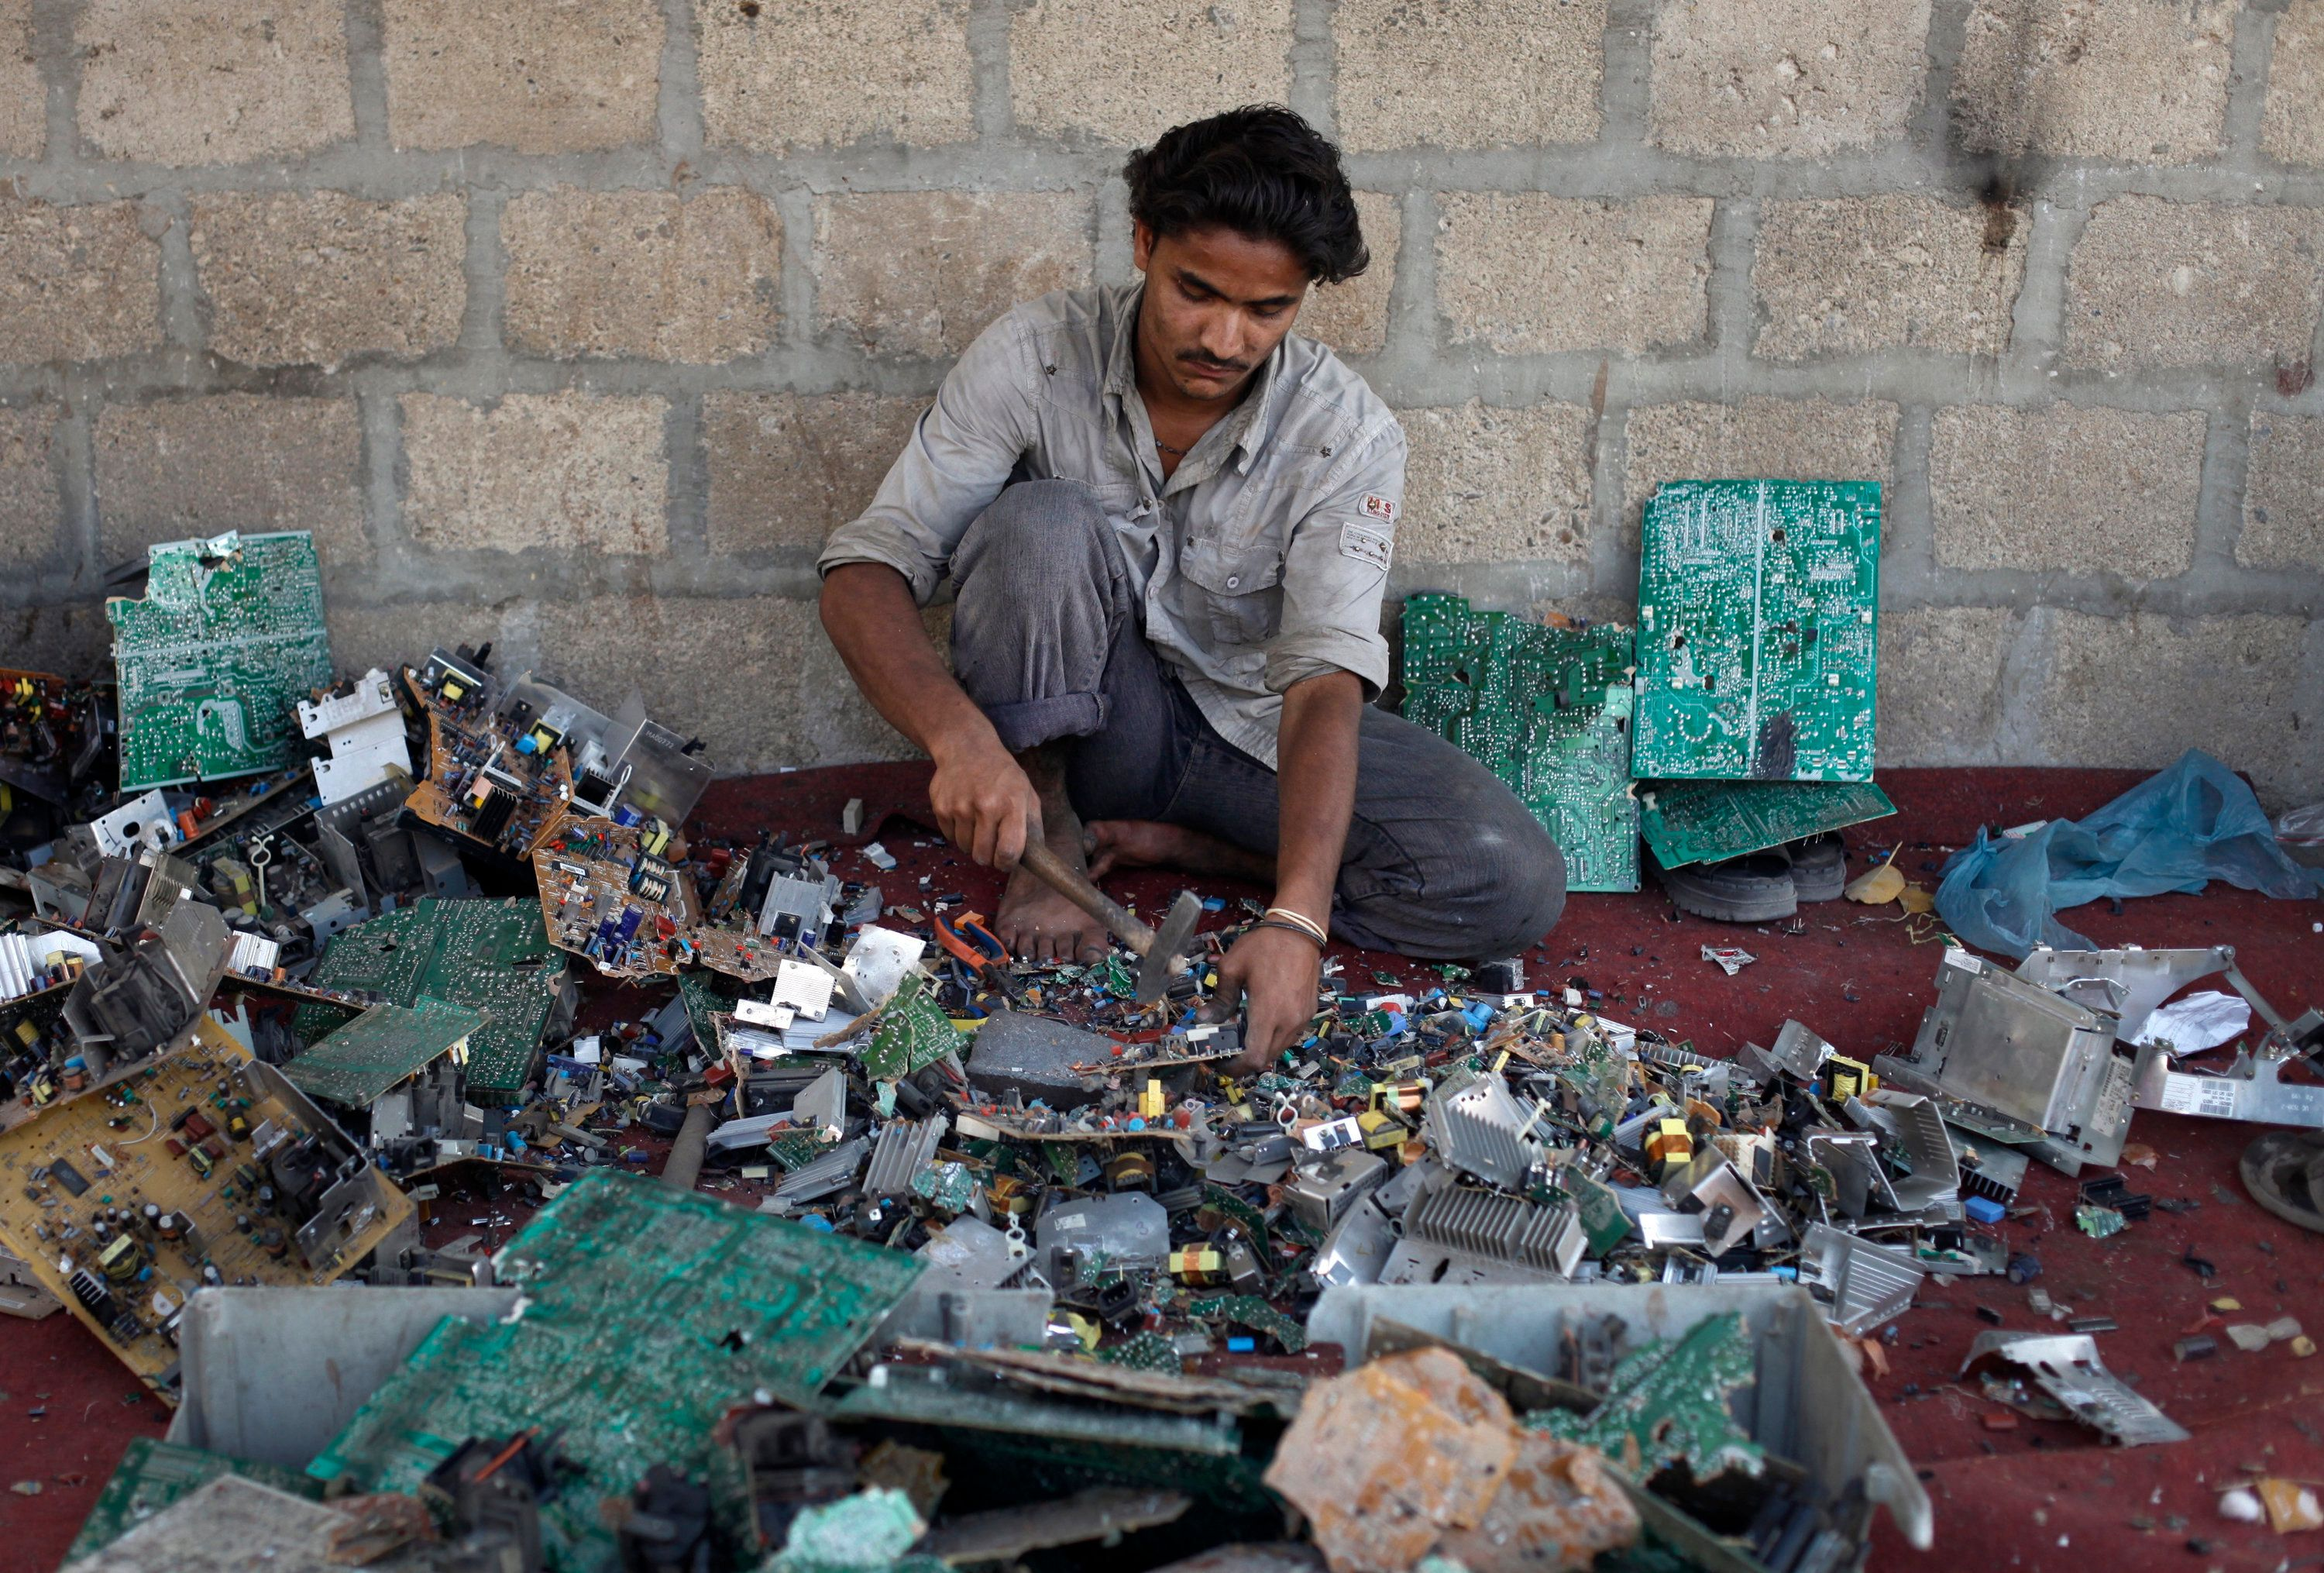 Ali Raza, 21, a scrap worker breaks a computer apart in order to retrieve metal to be used for soldering wires at a makeshift workshop in Karachi April 20, 2011.  REUTERS/Athar Hussain (PAKISTAN - Tags: SOCIETY BUSINESS)